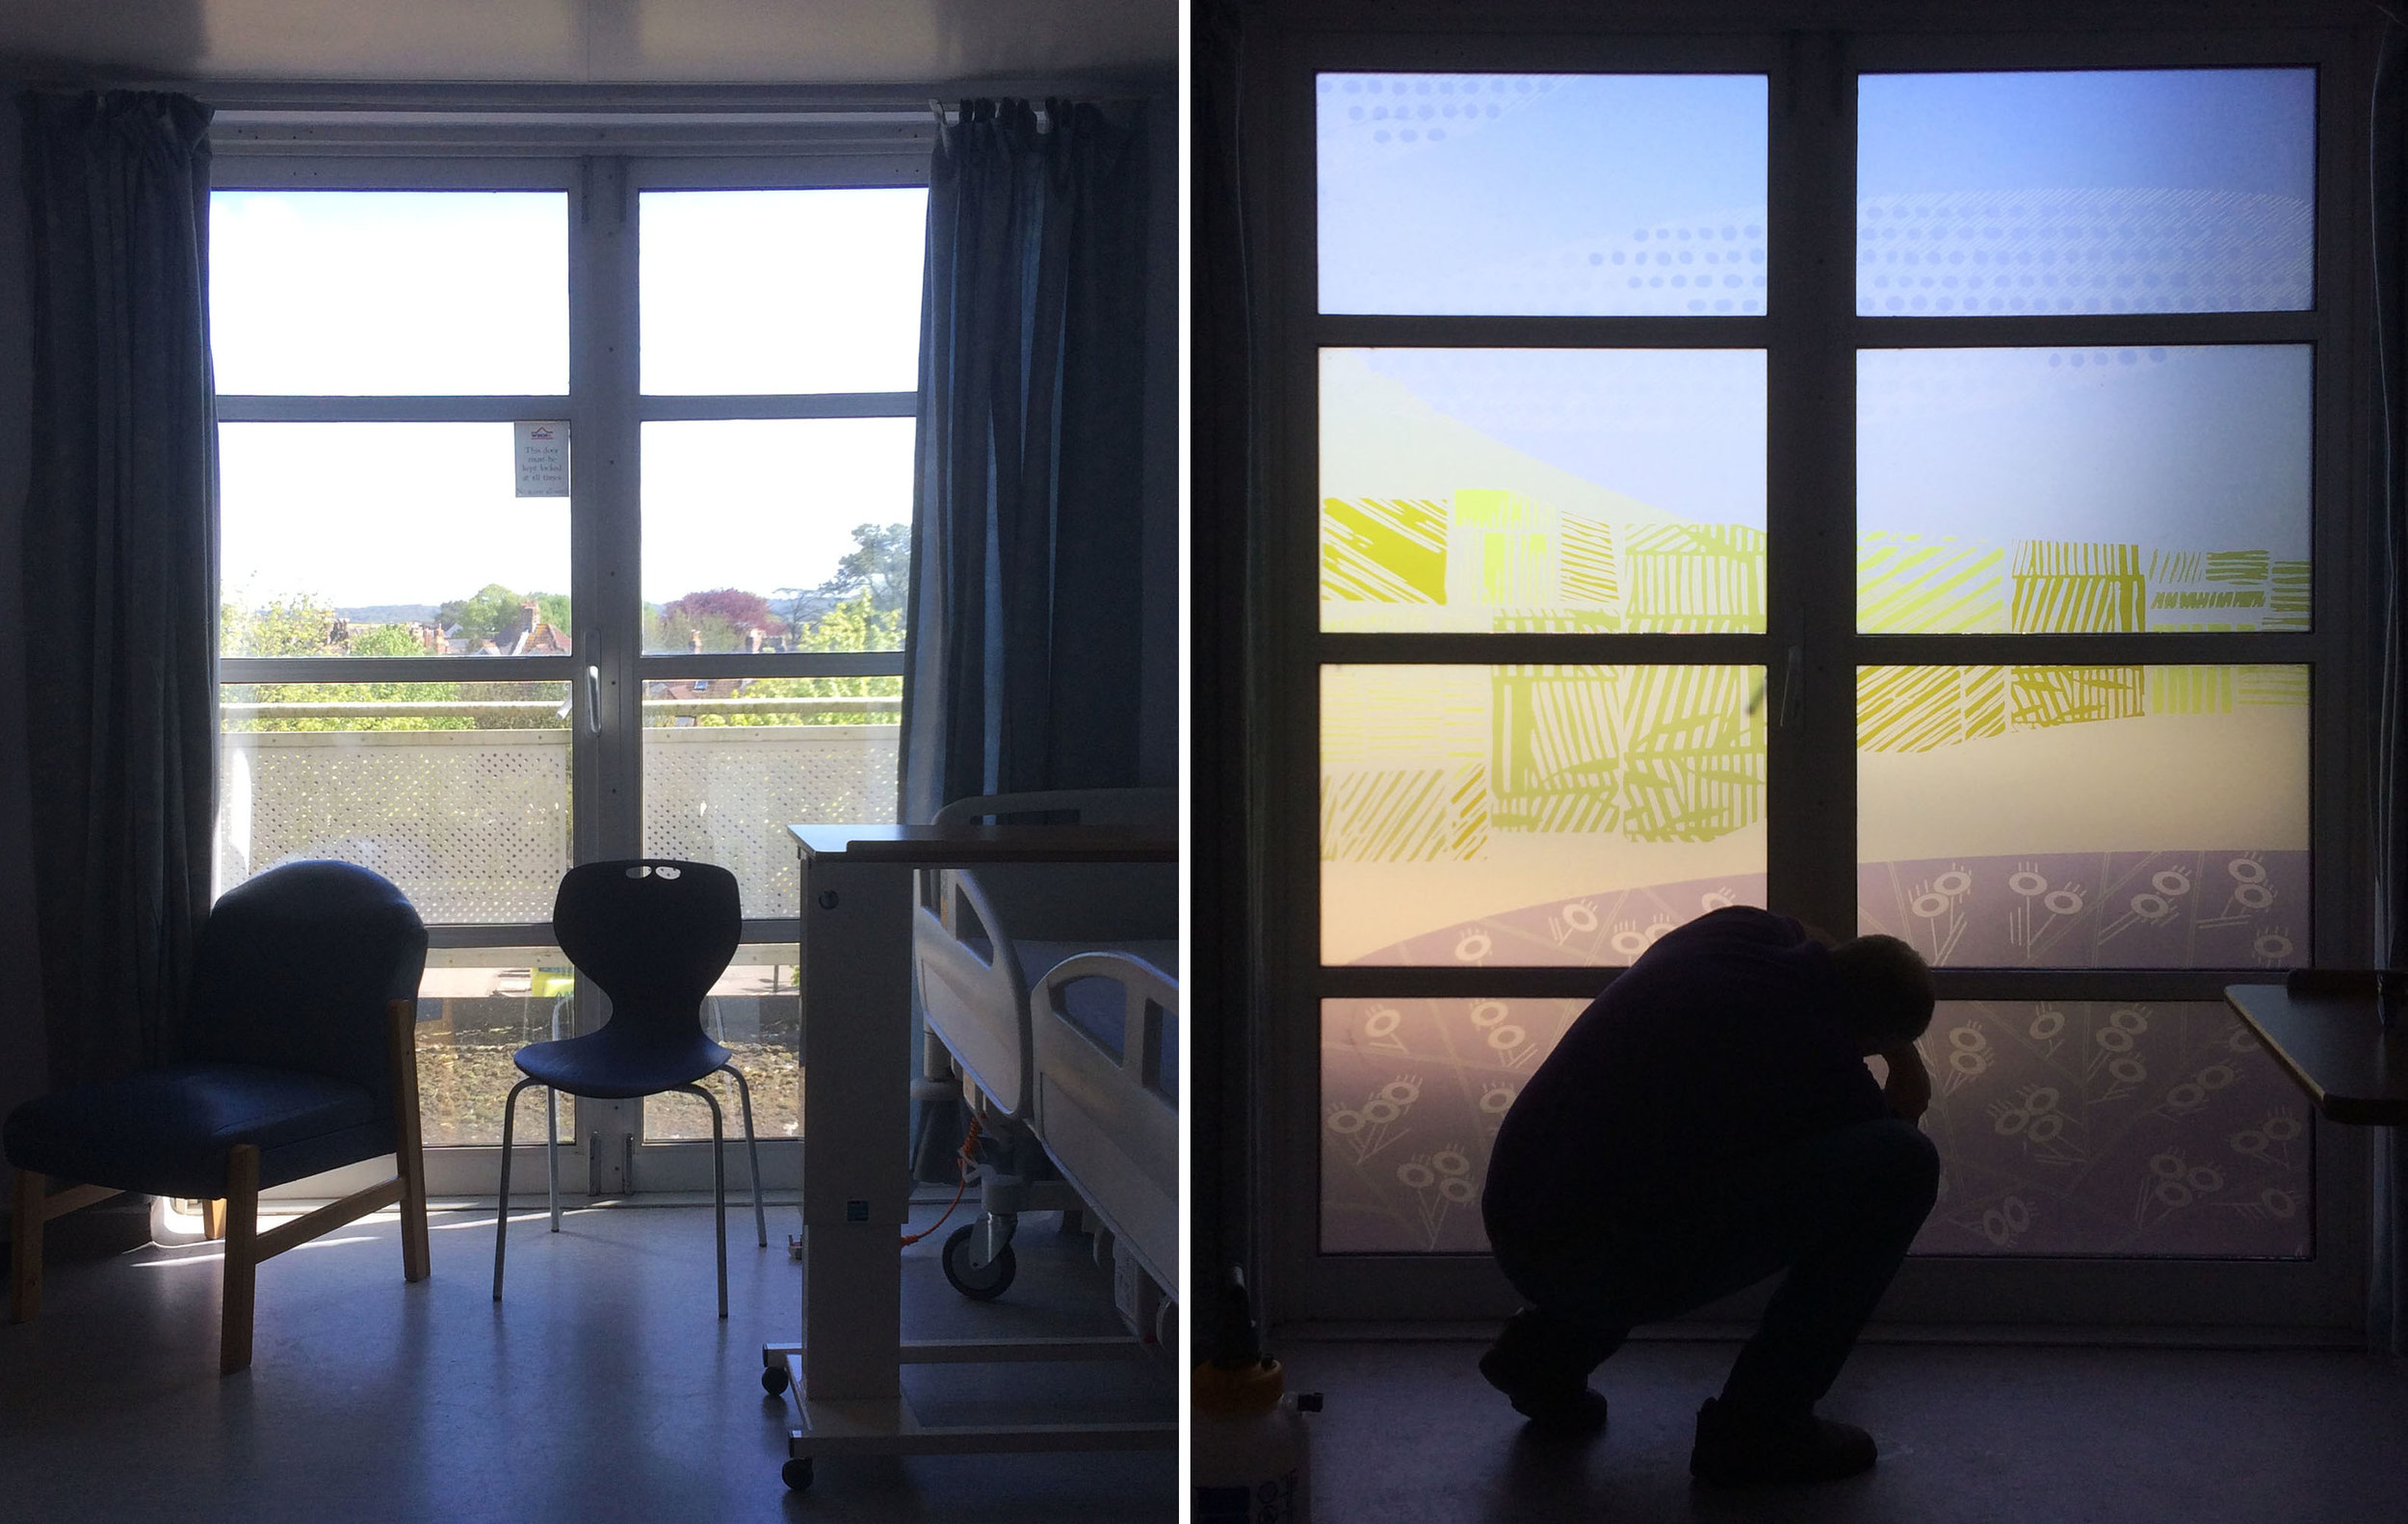 Room 31 - before and during installation